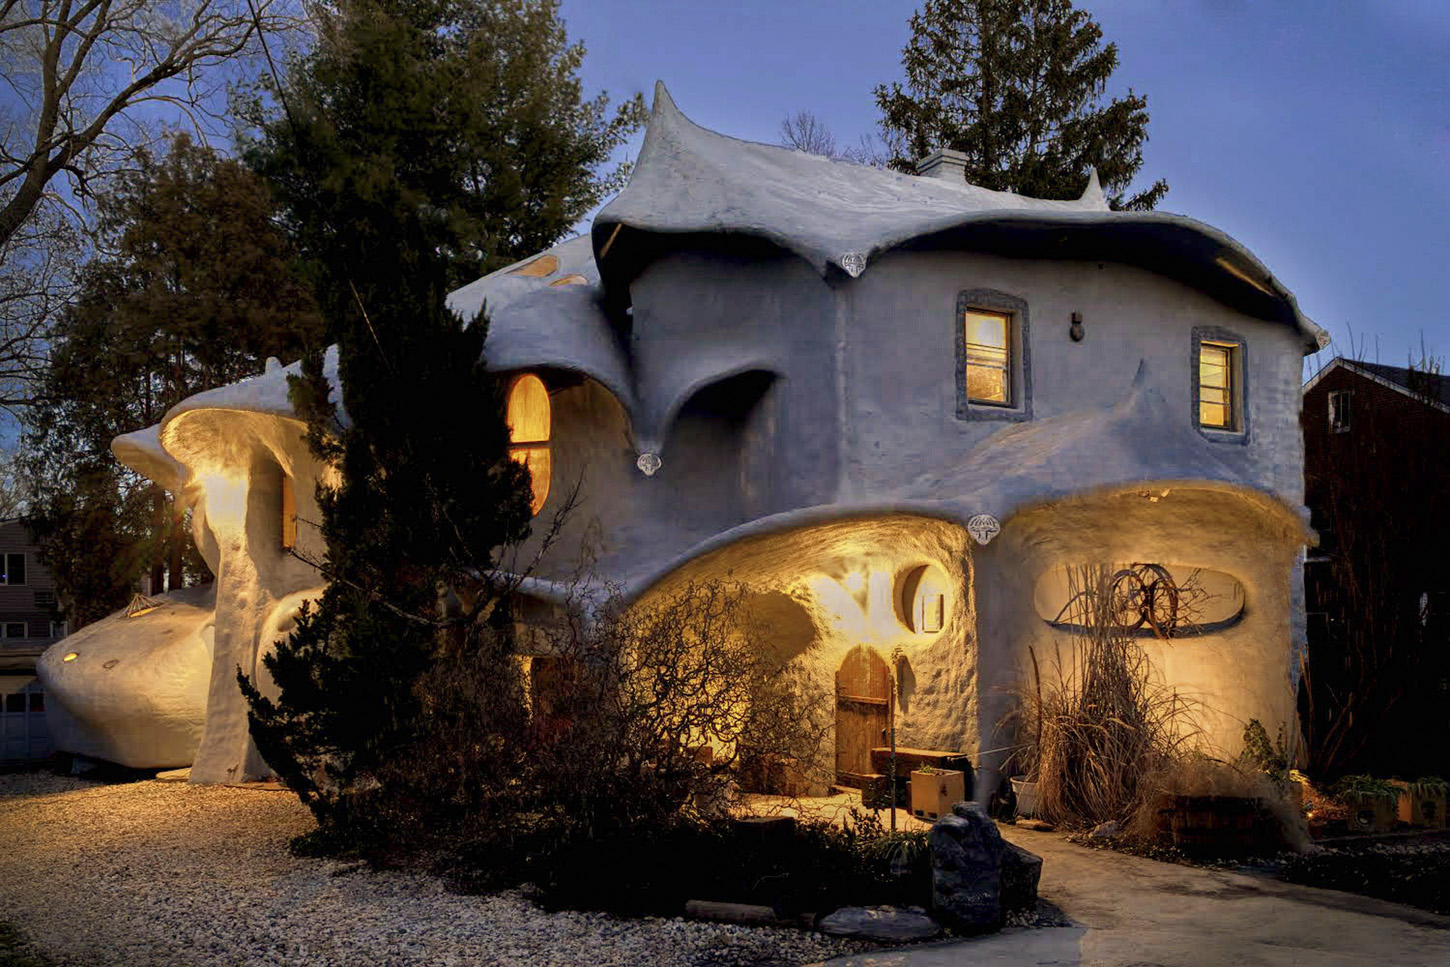 For The First Time, The Famous Mushroom House Of Bethesda, MD Has Hit The  Market For $1.2 Million. Itu0027s Not A New Construction, But It Could Be.